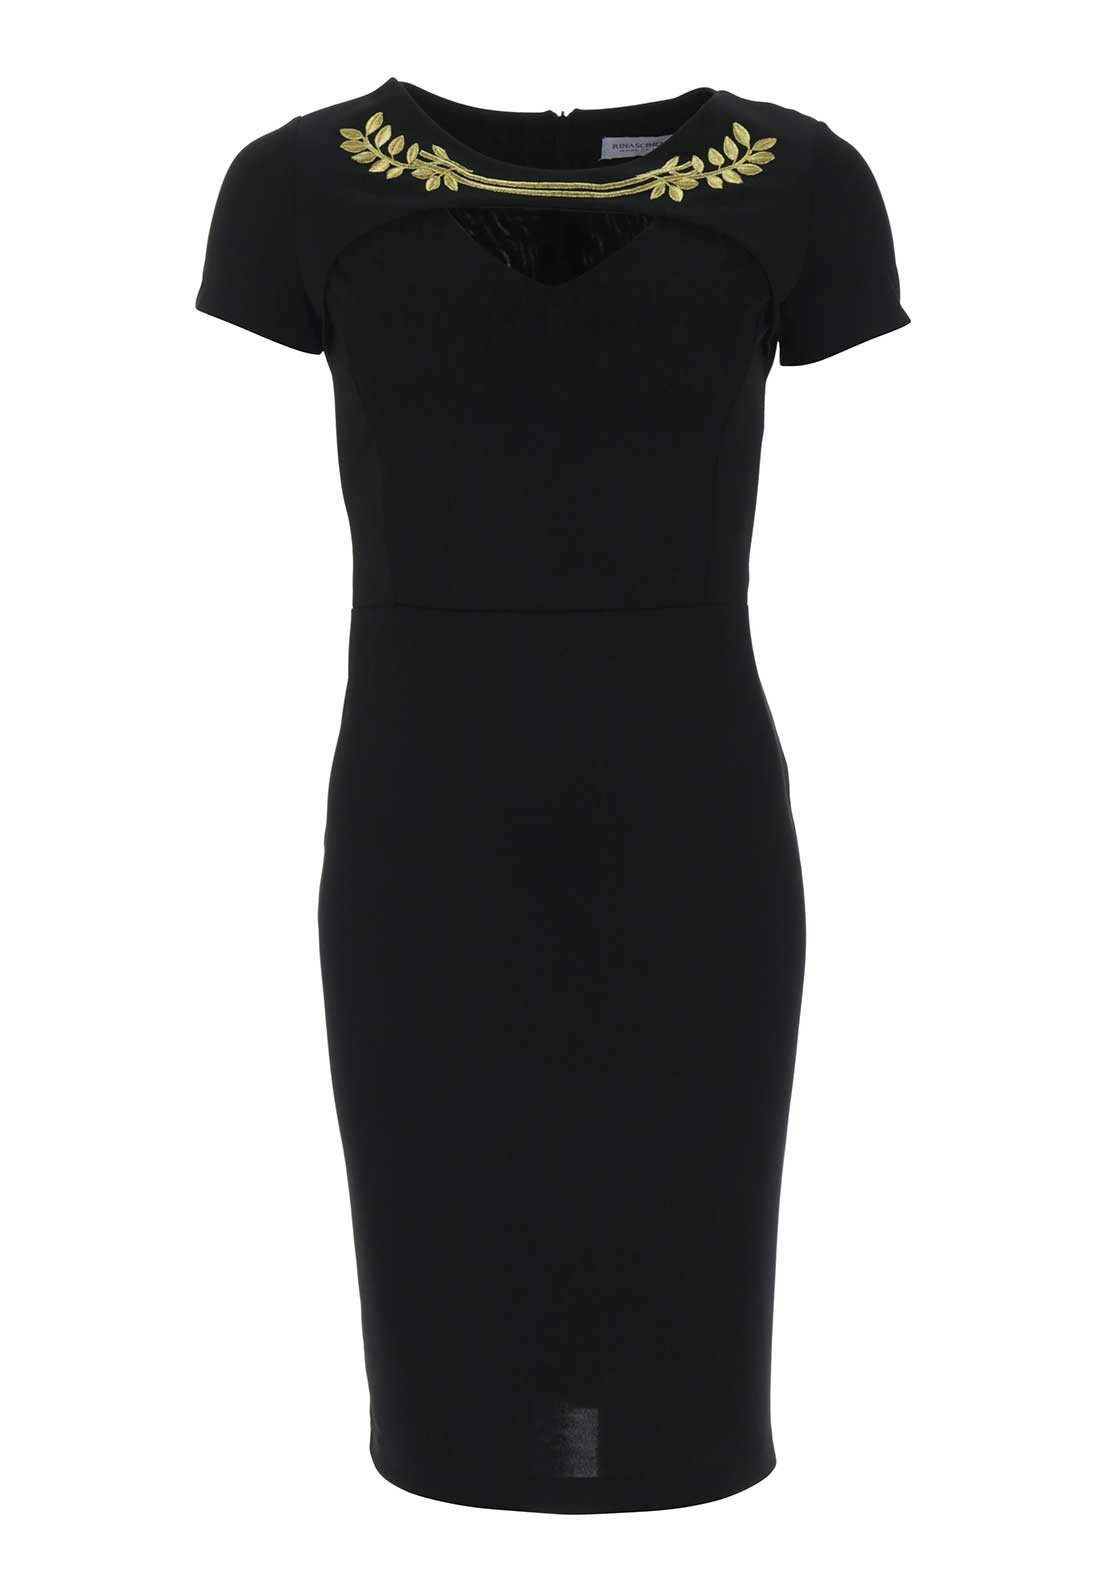 Rinascimento Embroidered Bodycon Dress, Black